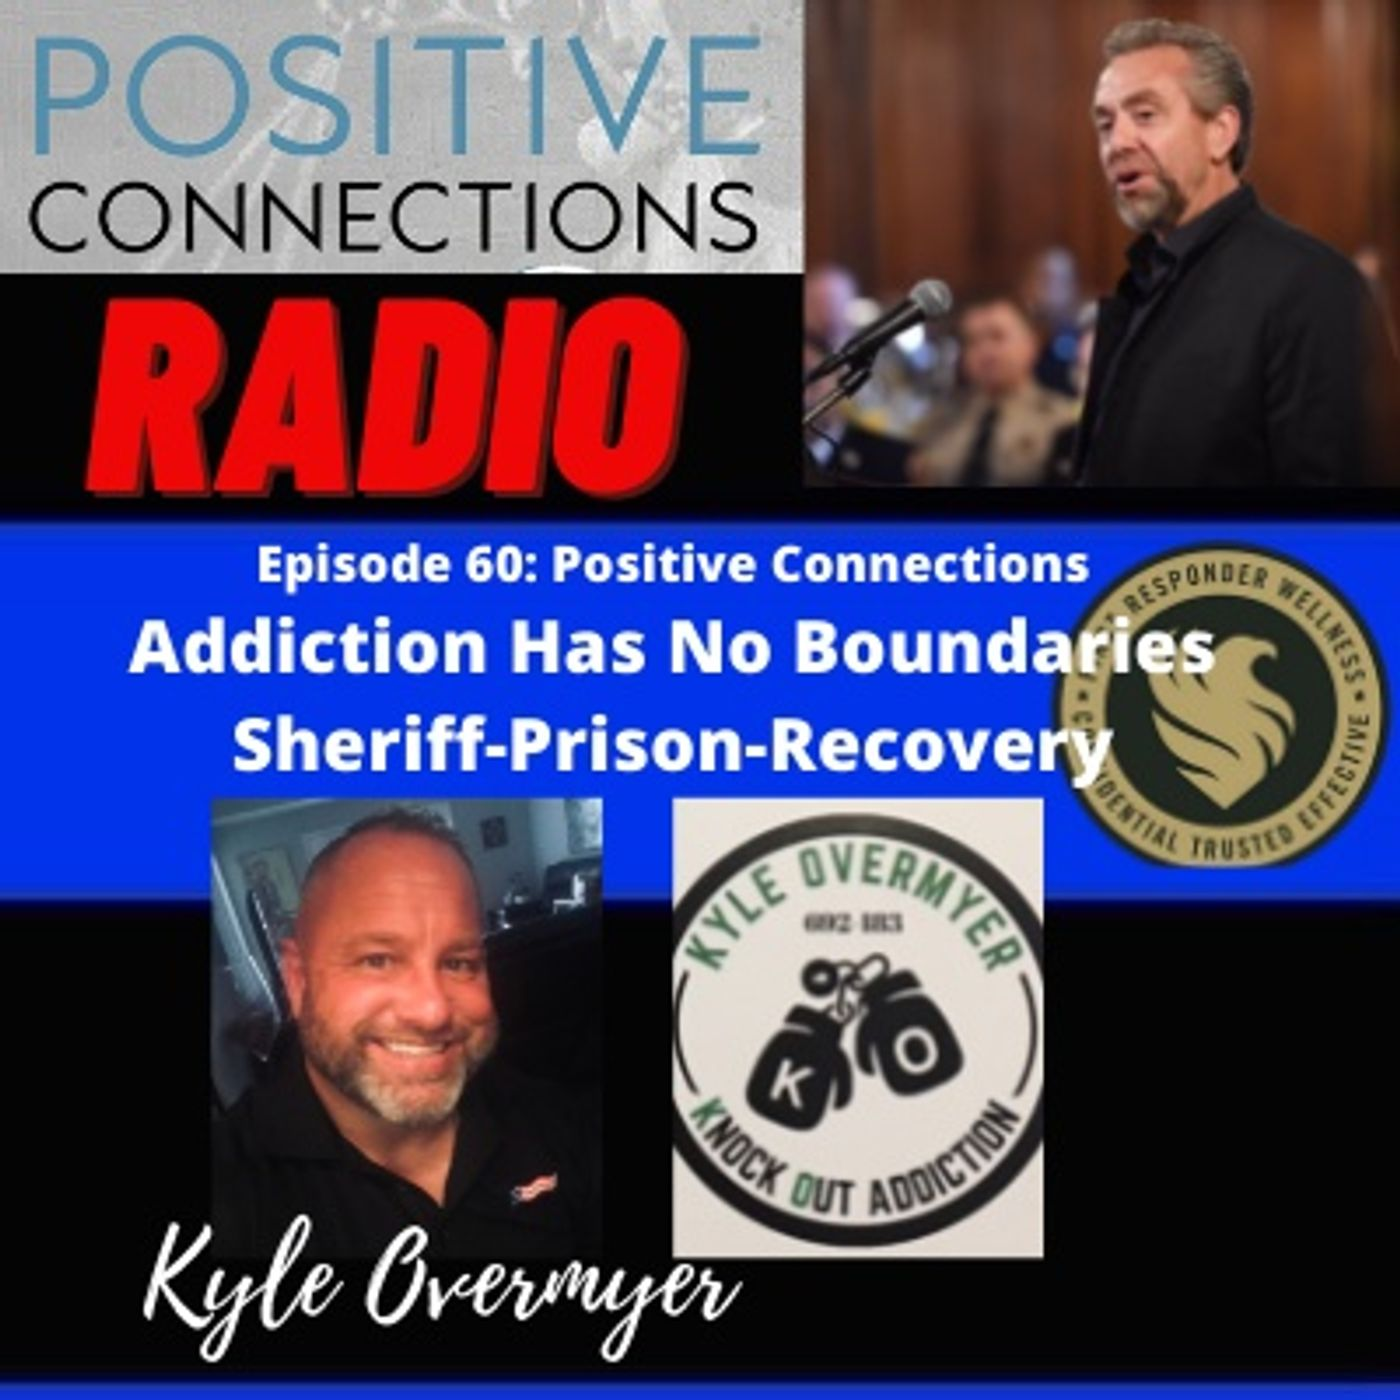 Addiction Has No Boundaries: Sheriff-Prison-Recovery: Kyle Overmyer